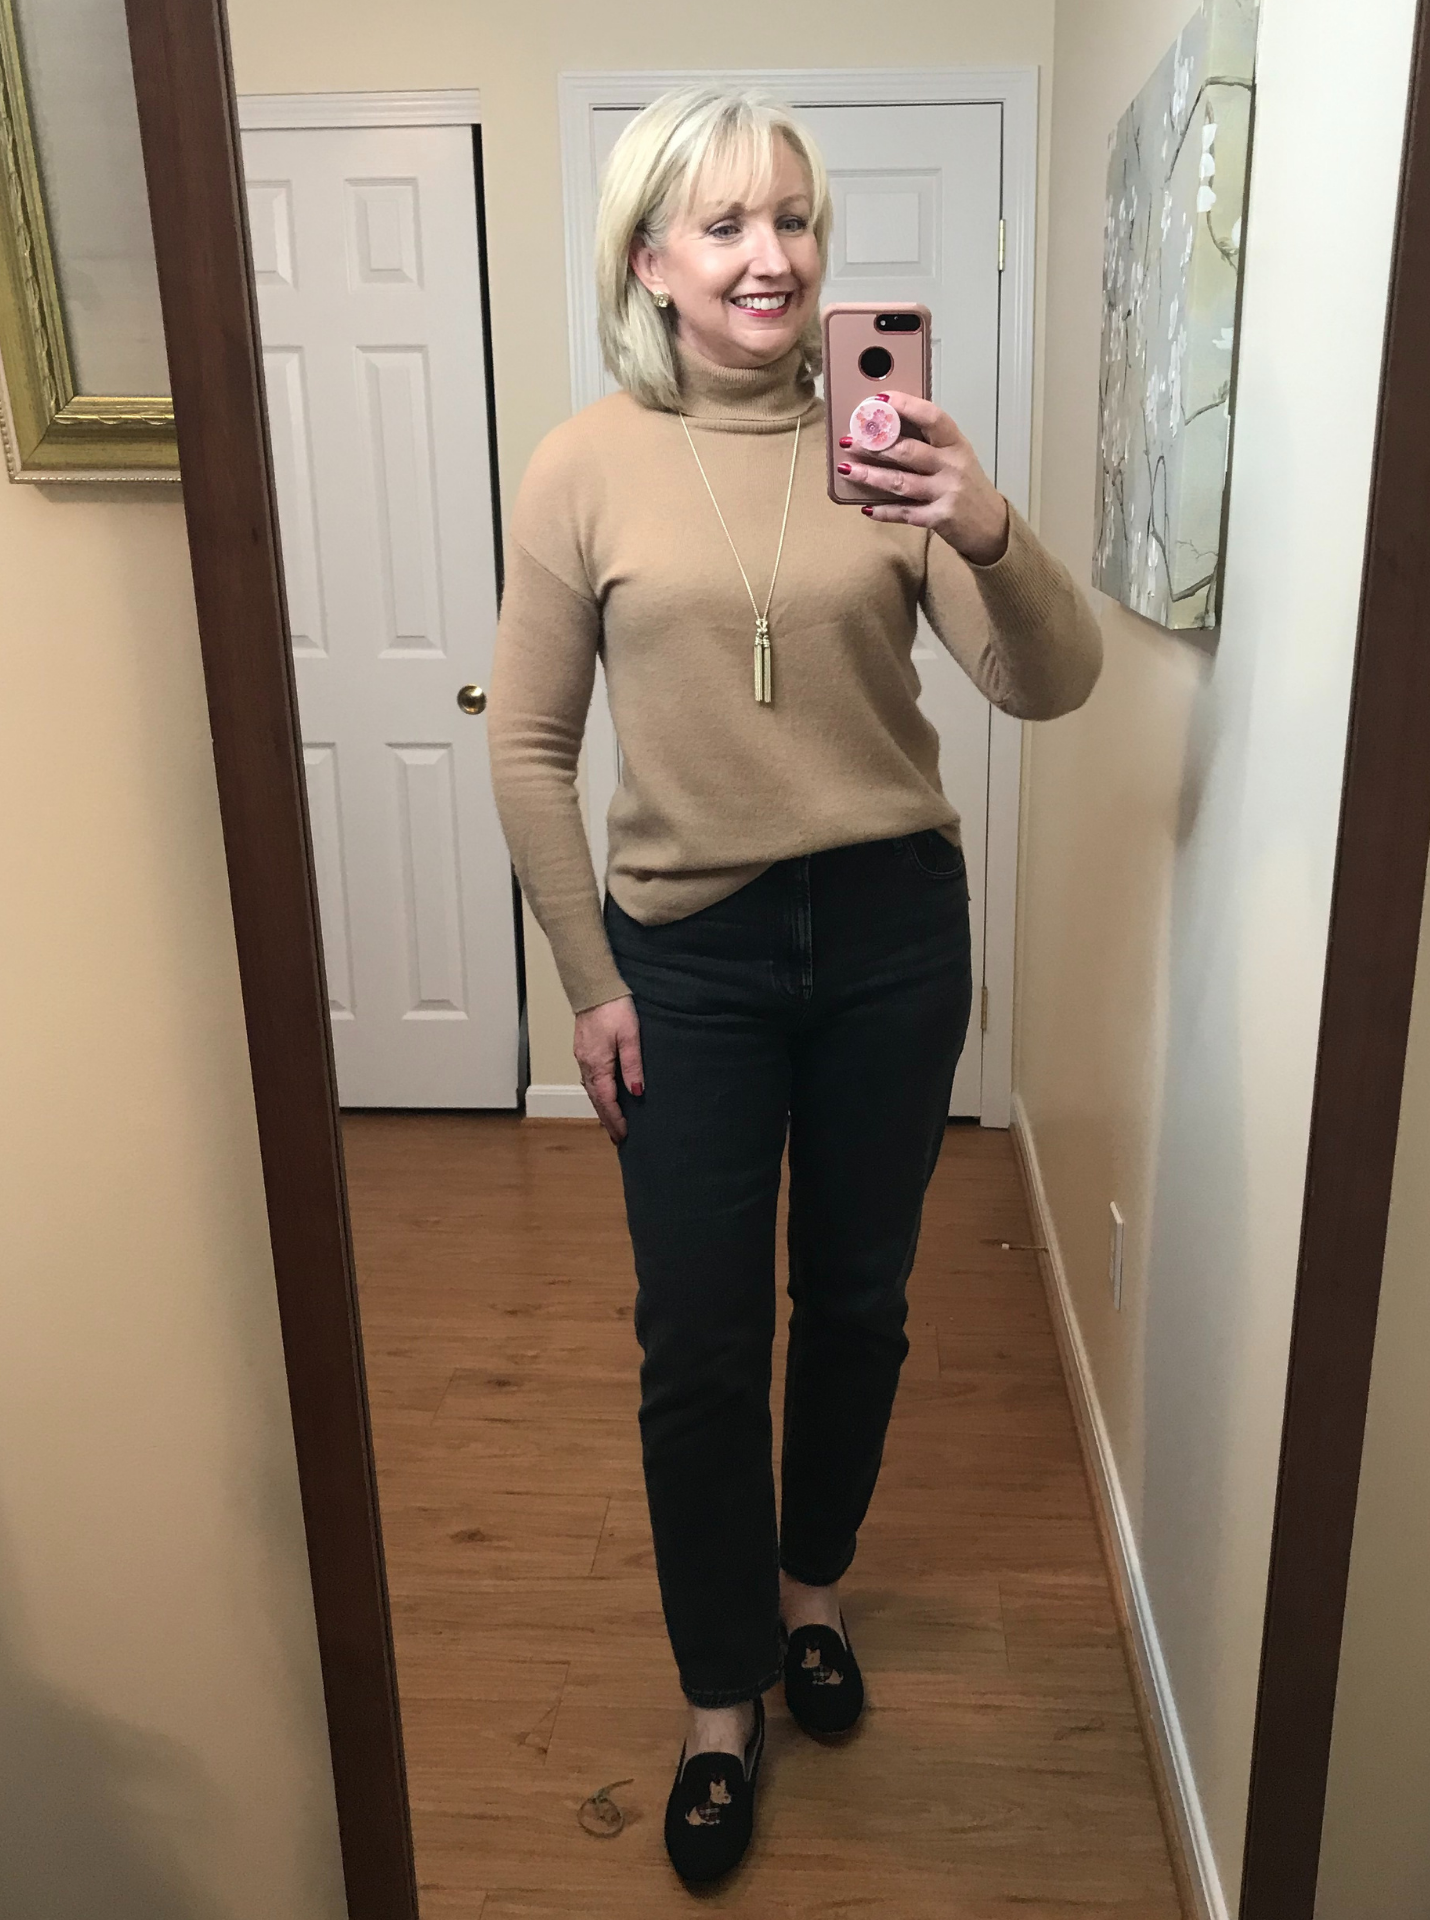 Friday work from home outfit